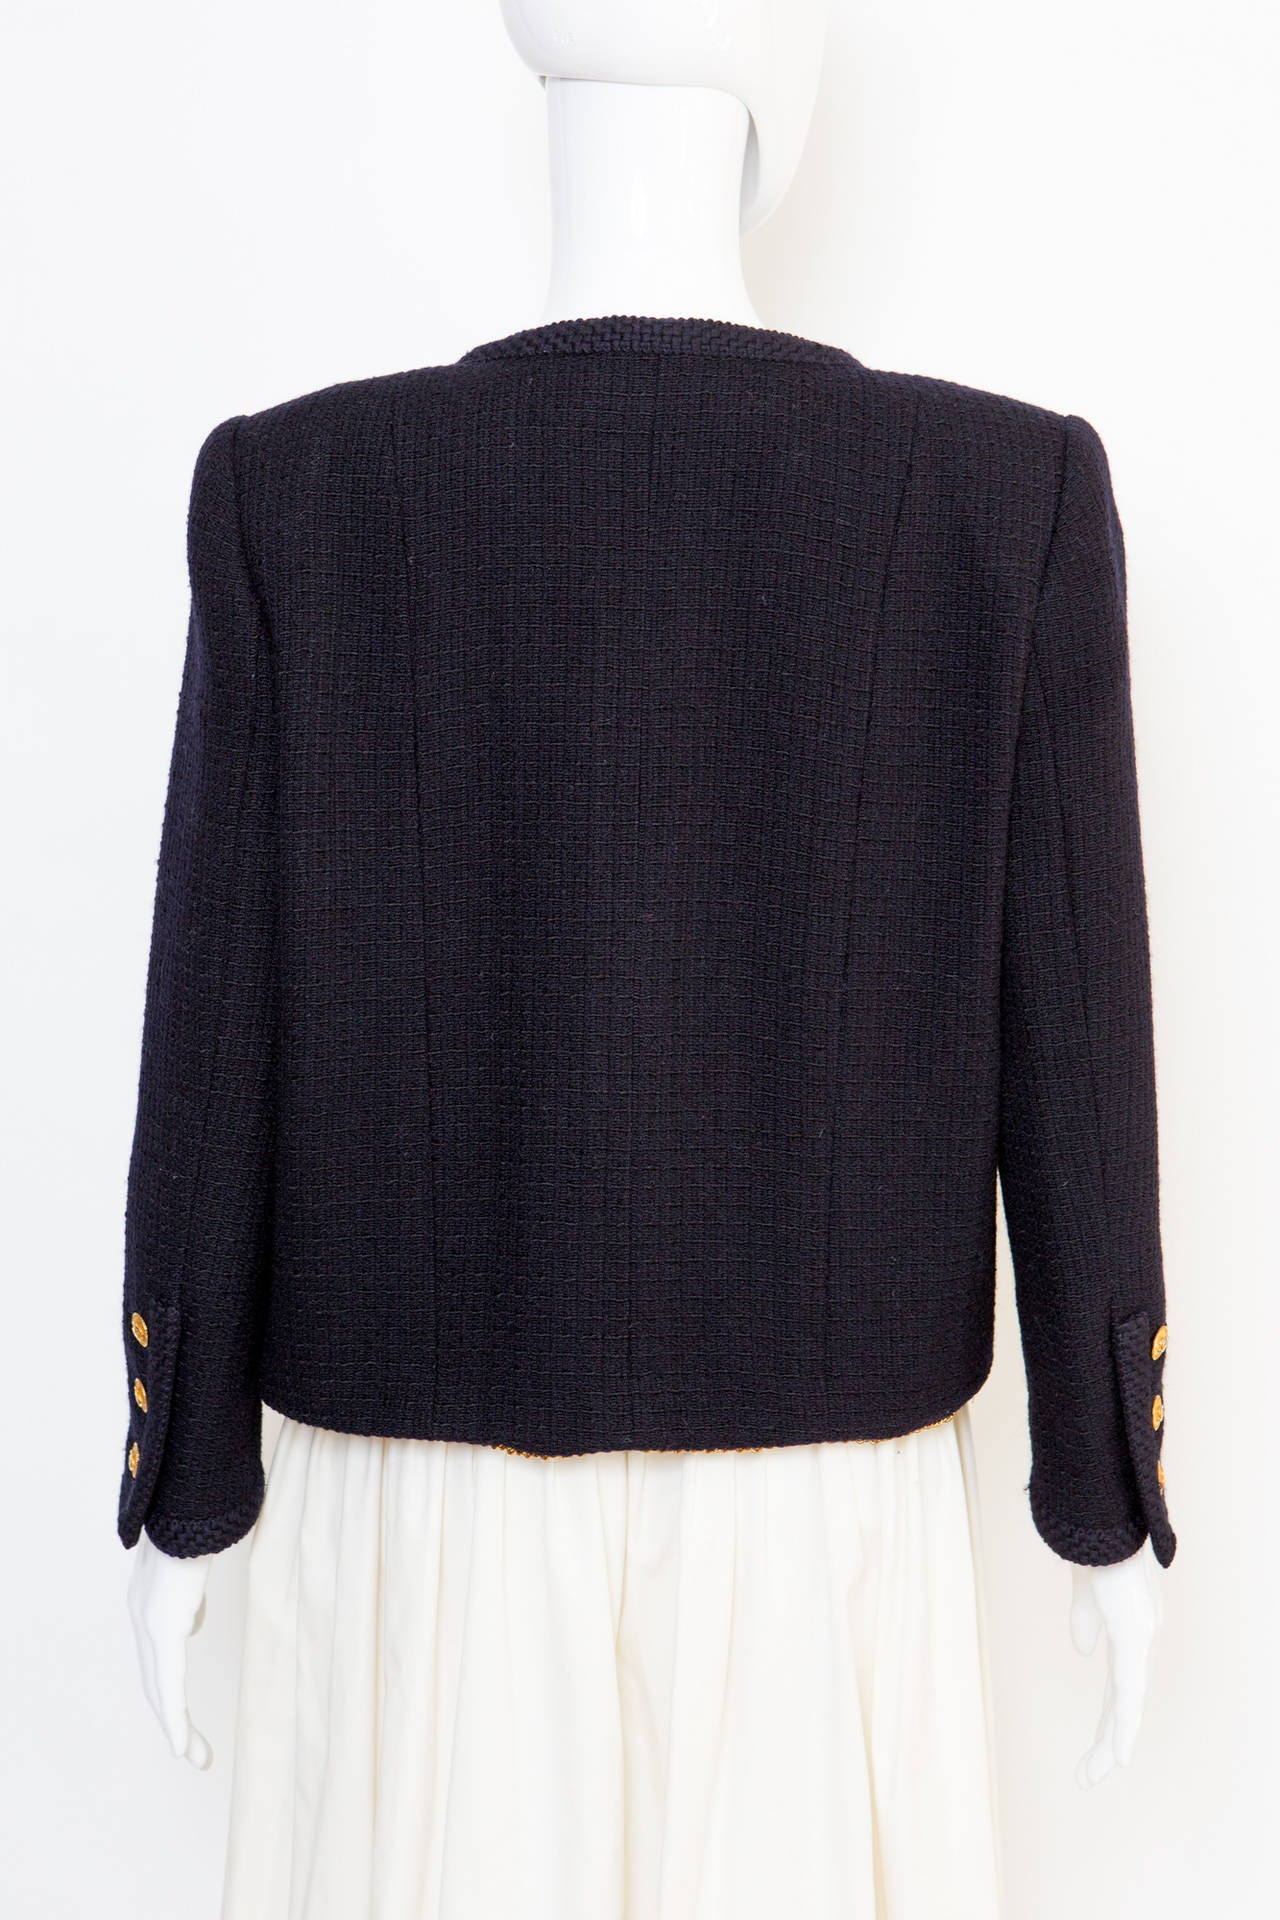 1990s Chanel Classic Dark Navy Wool Boucle Jacket 4